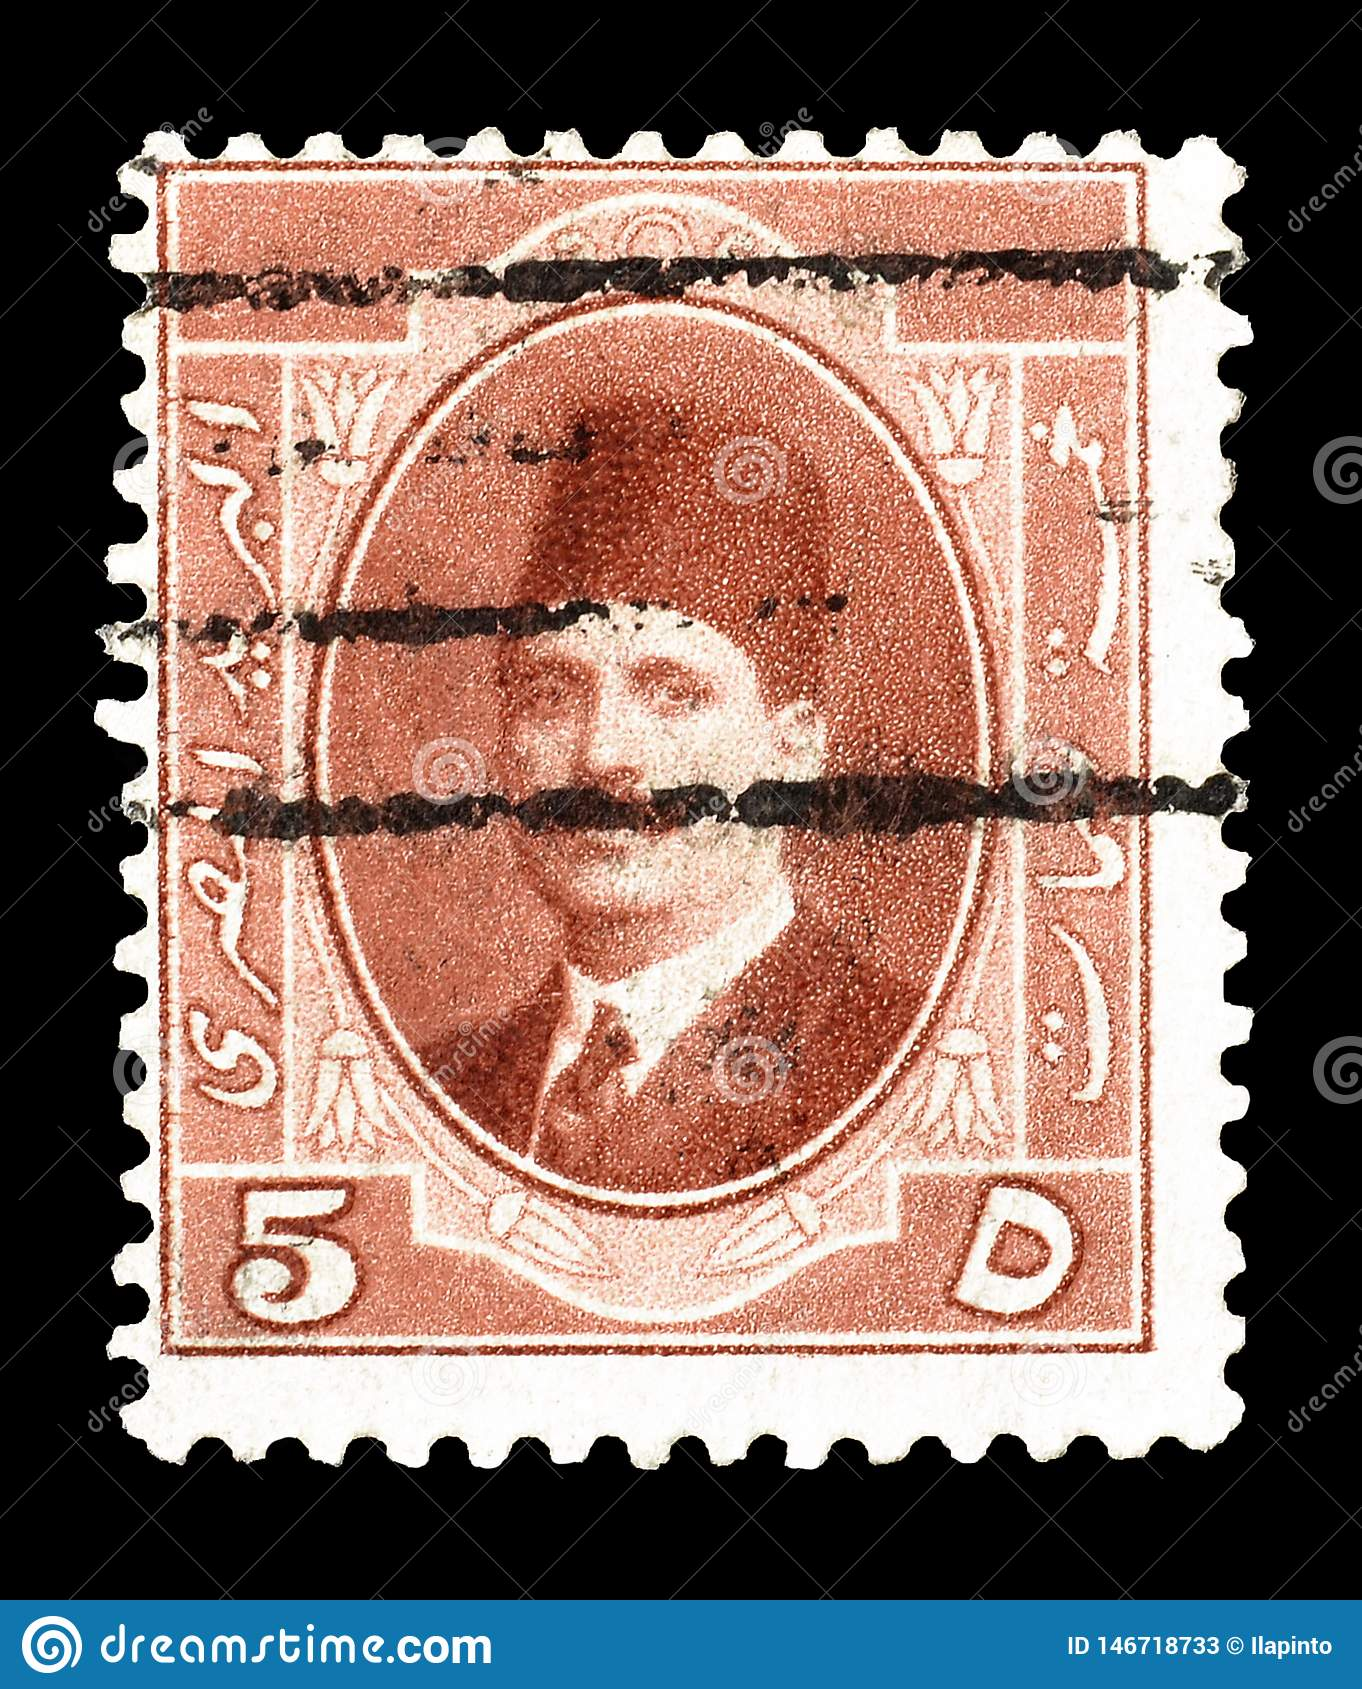 Egypt On Postage Stamps Editorial Stock Photo Image Of